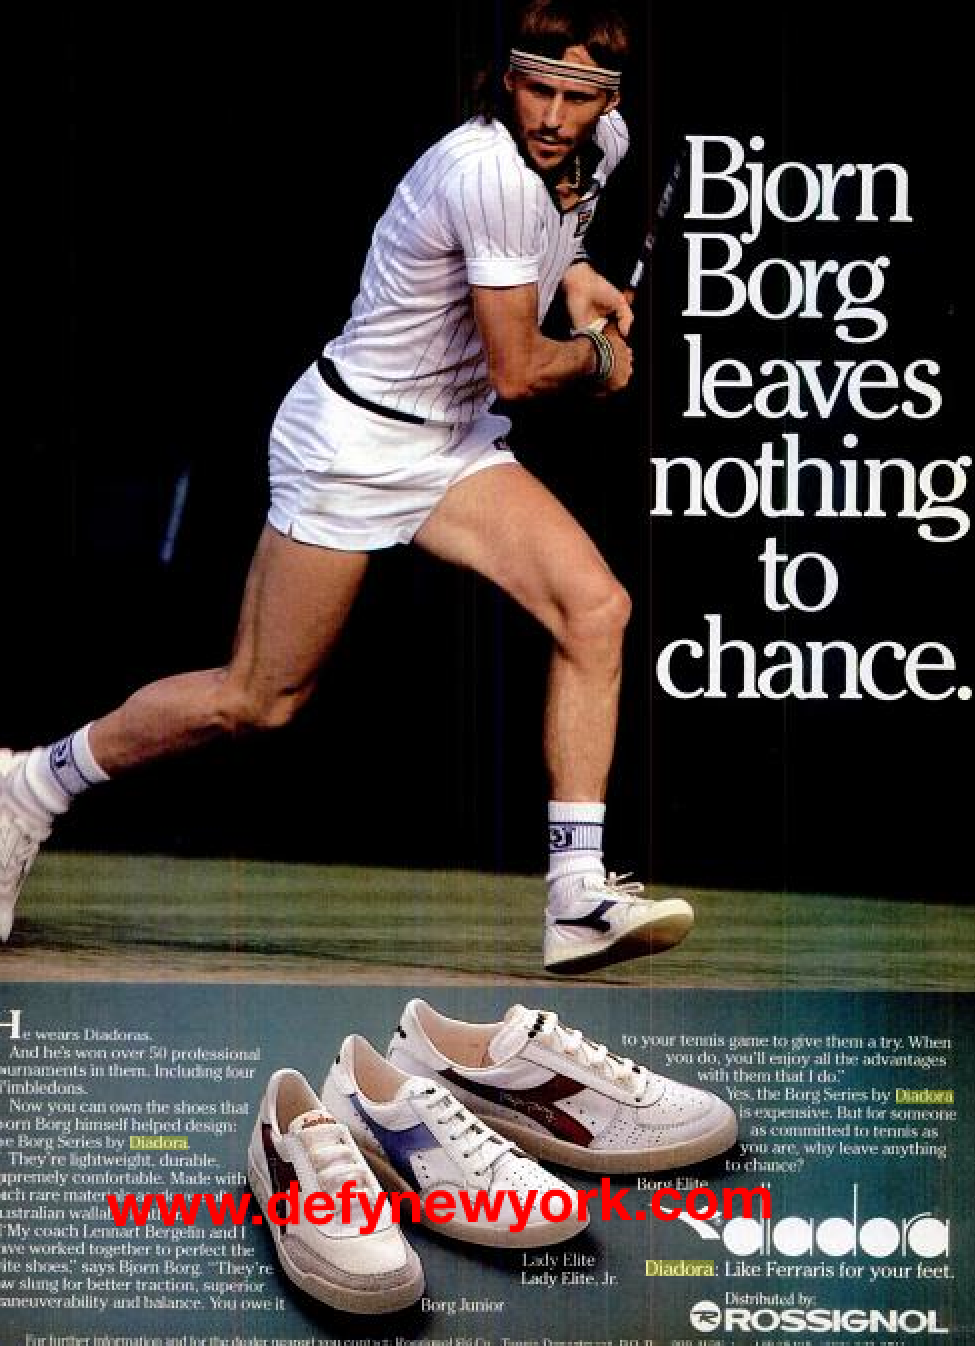 Diadora Bjorn Borg Tennis Shoes